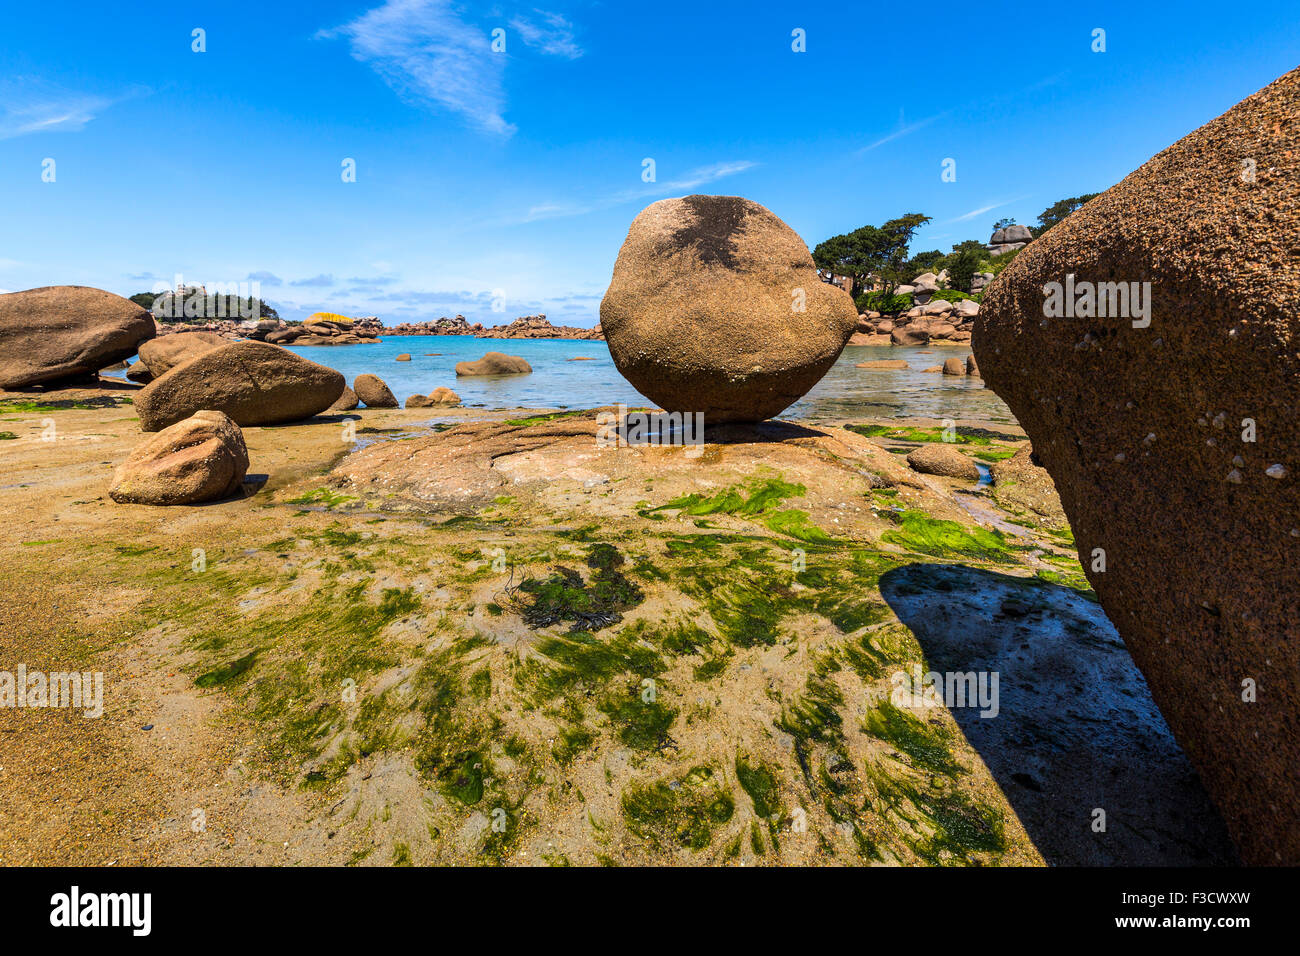 Giant rocks at the Cote granit rose pink granite coast Ploumanac´h Perros Guirec French Brittany France Europe Stock Photo